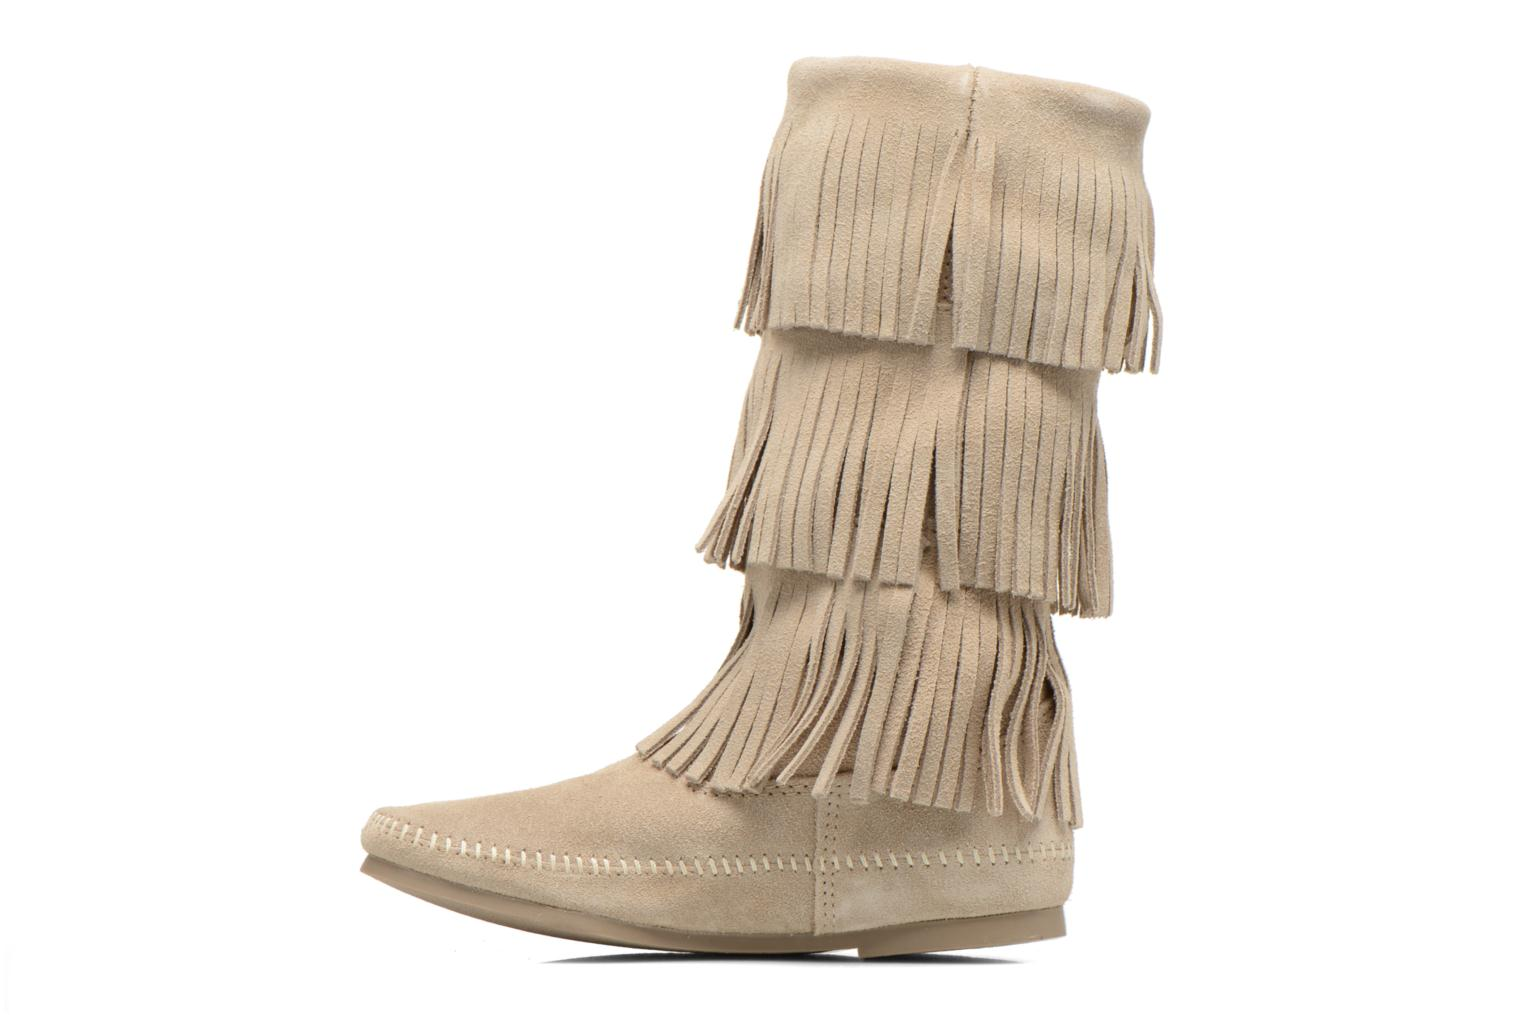 Bottines et boots Minnetonka 3 LAYER FRINGE BOOT Beige vue face